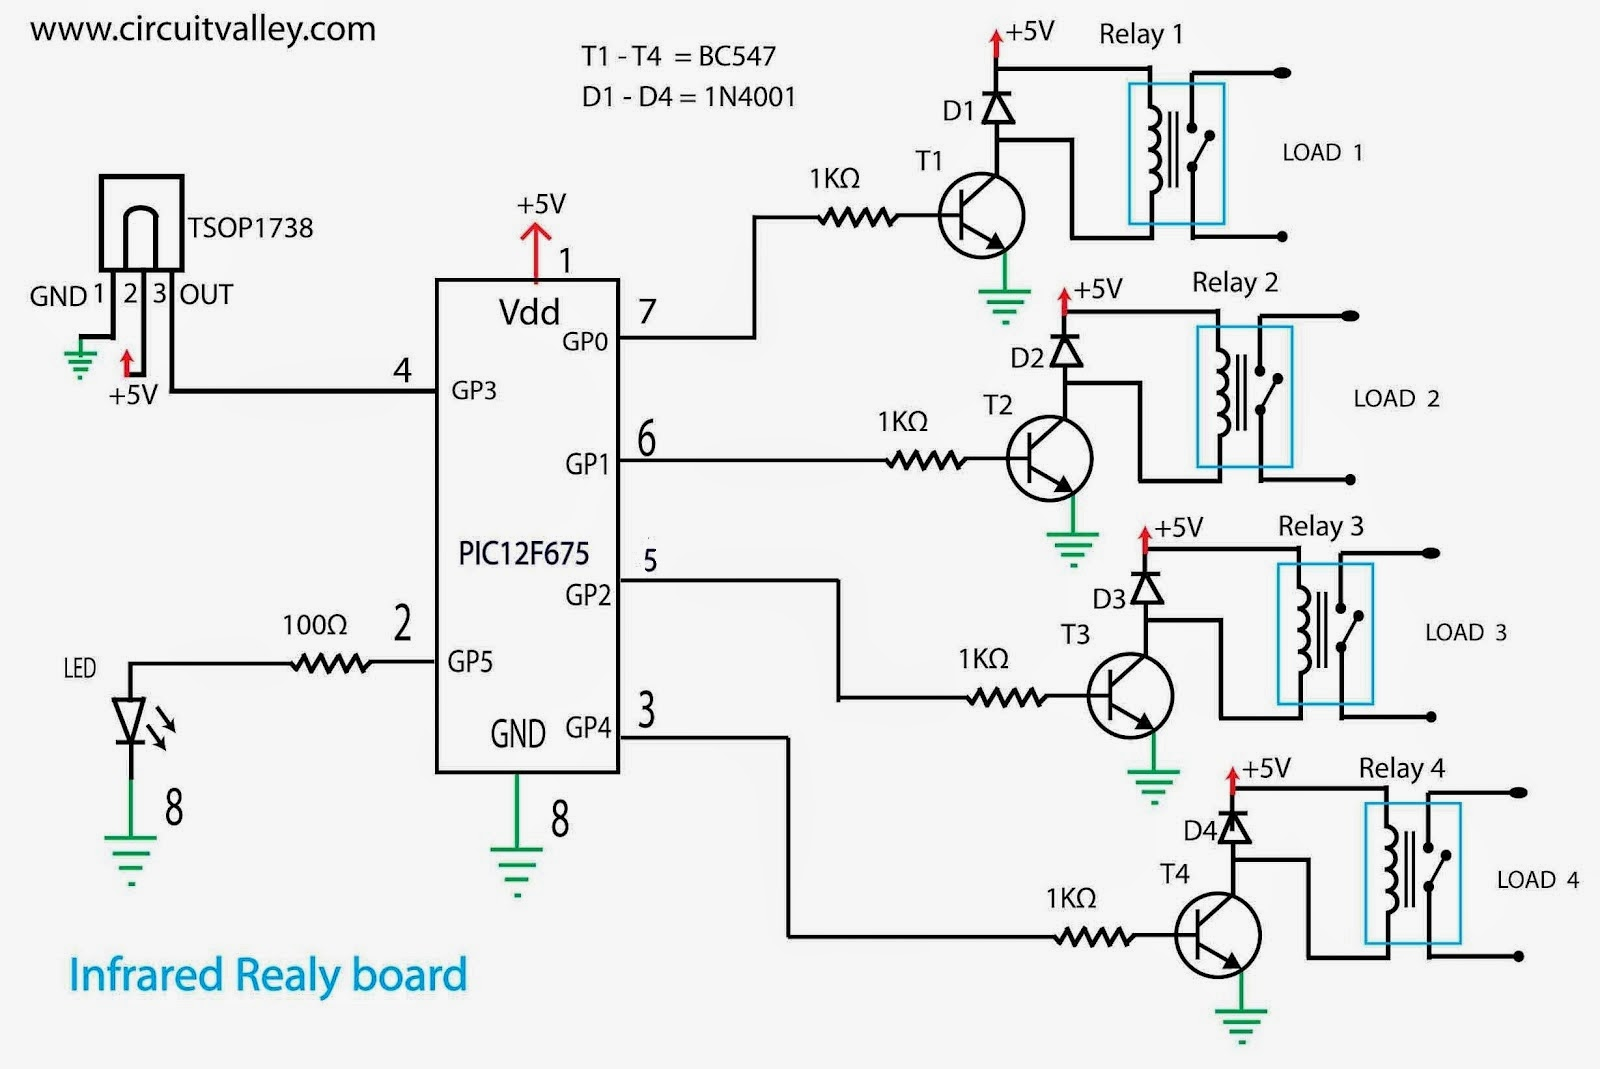 Control 4 Relay Wiring Data Schematic 240 Volt Diagram Embedded Engineering Ir Infrared Remote Board With Rh Circuitvalley Com Switch